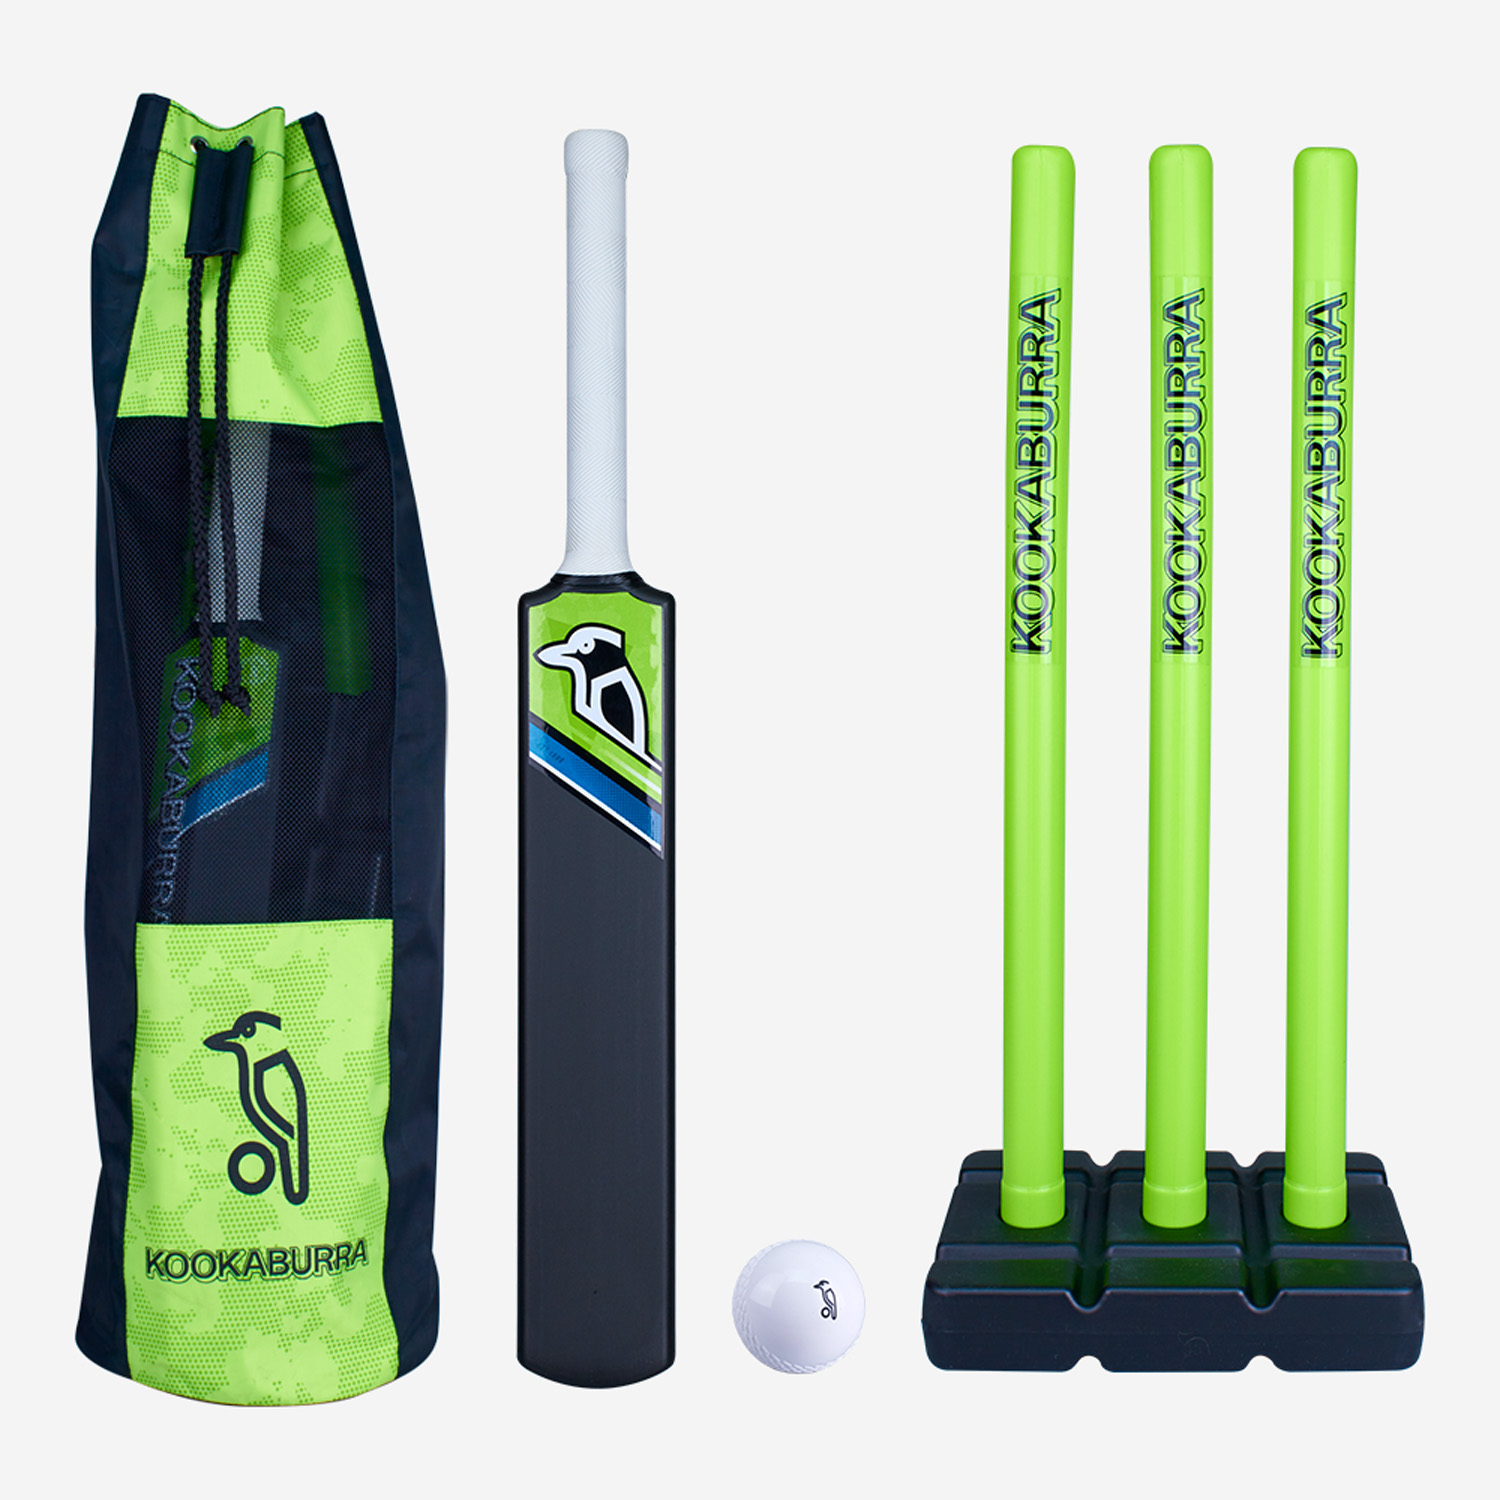 Kookaburra Blast Cricket Set